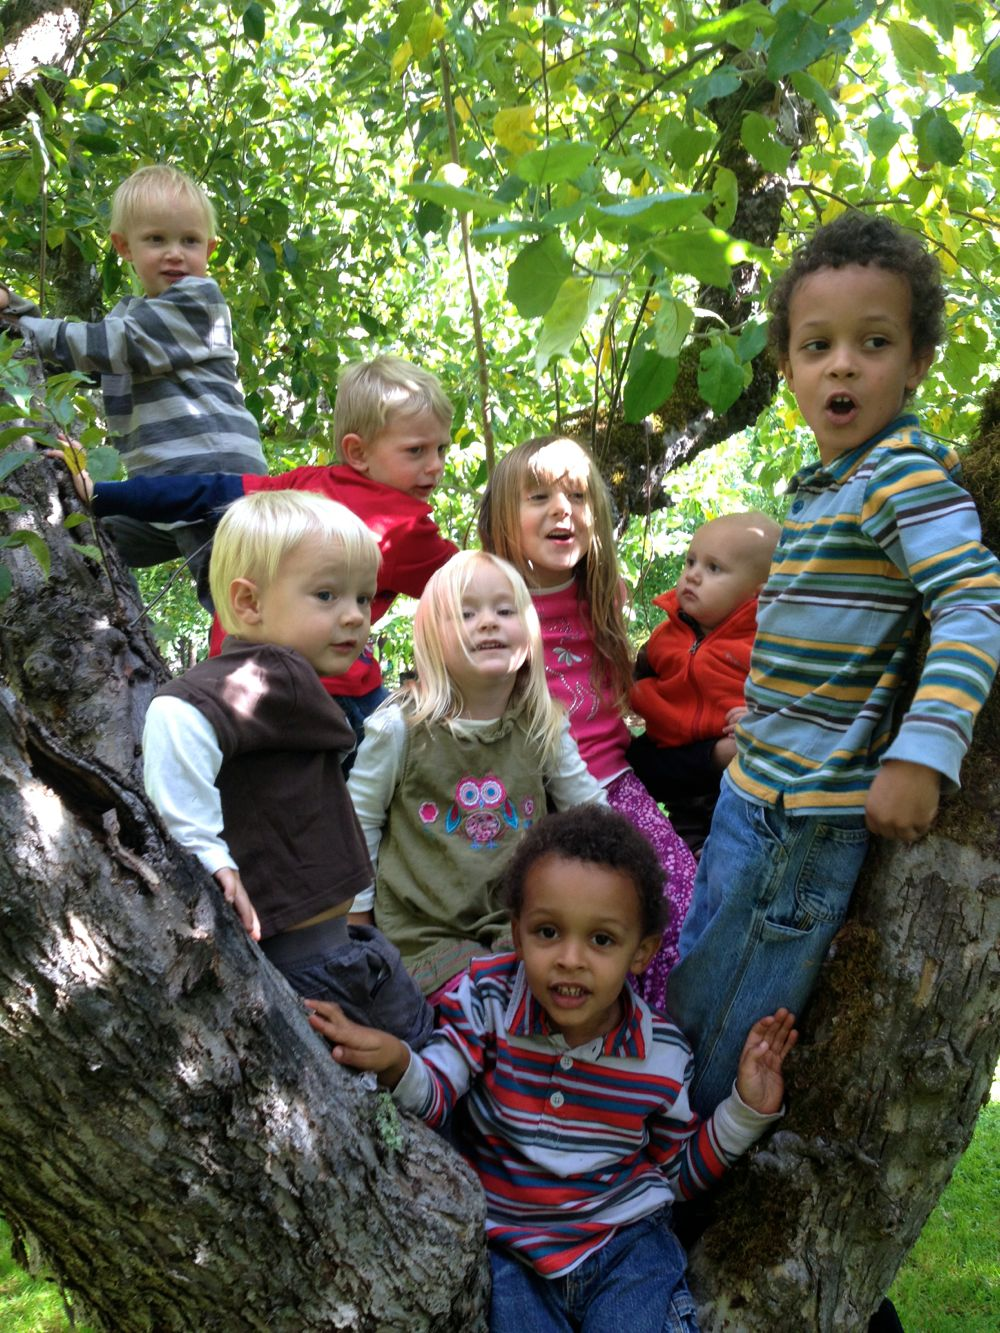 kids in apple tree